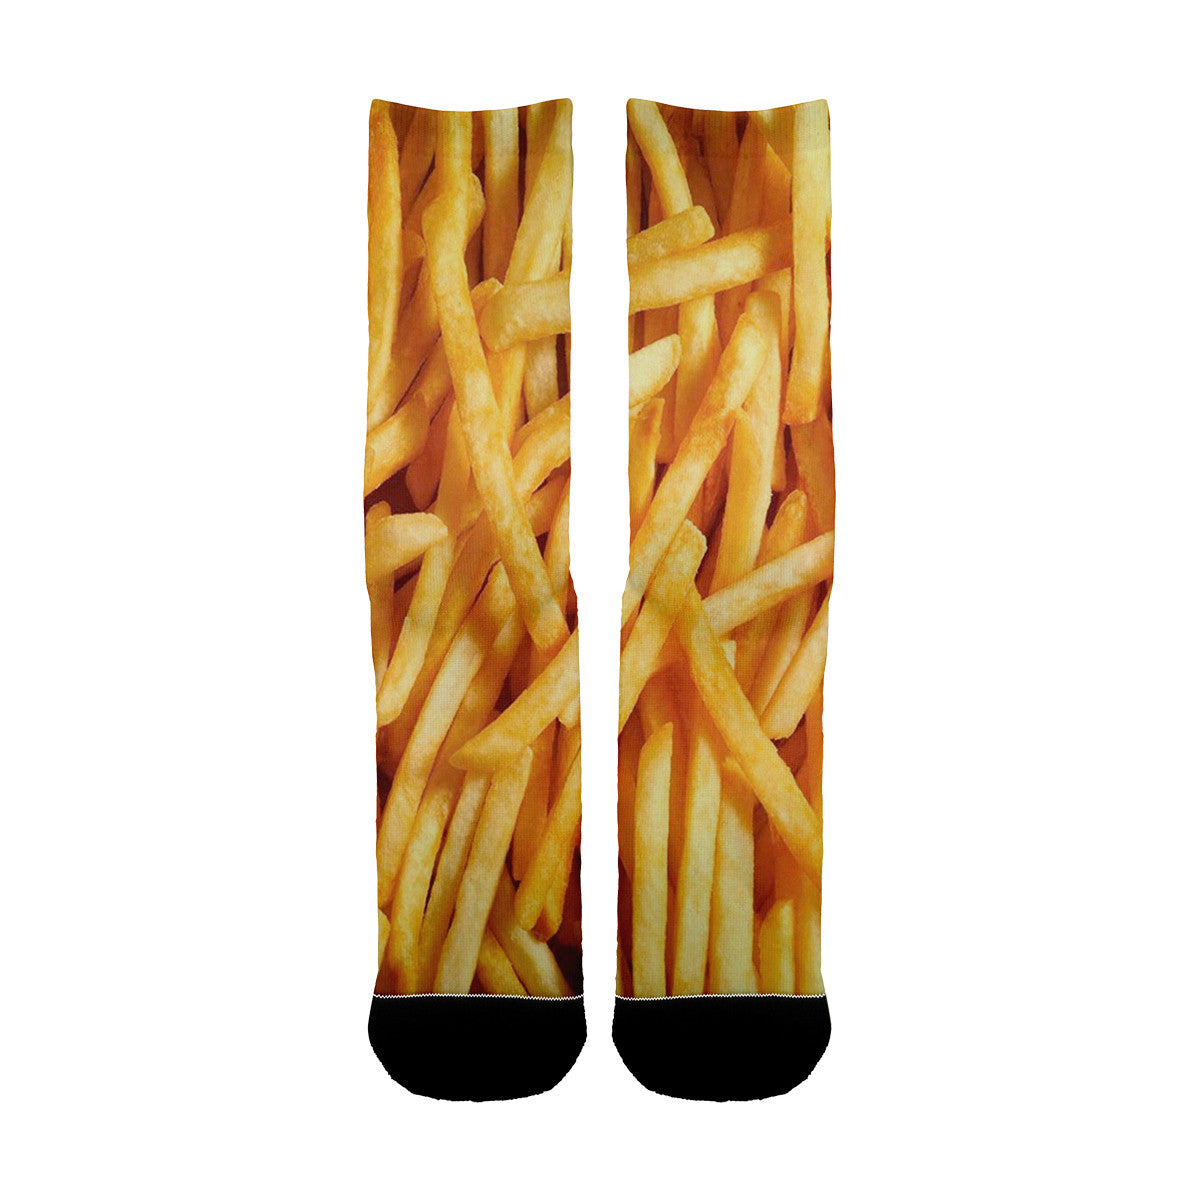 French Fry Socks